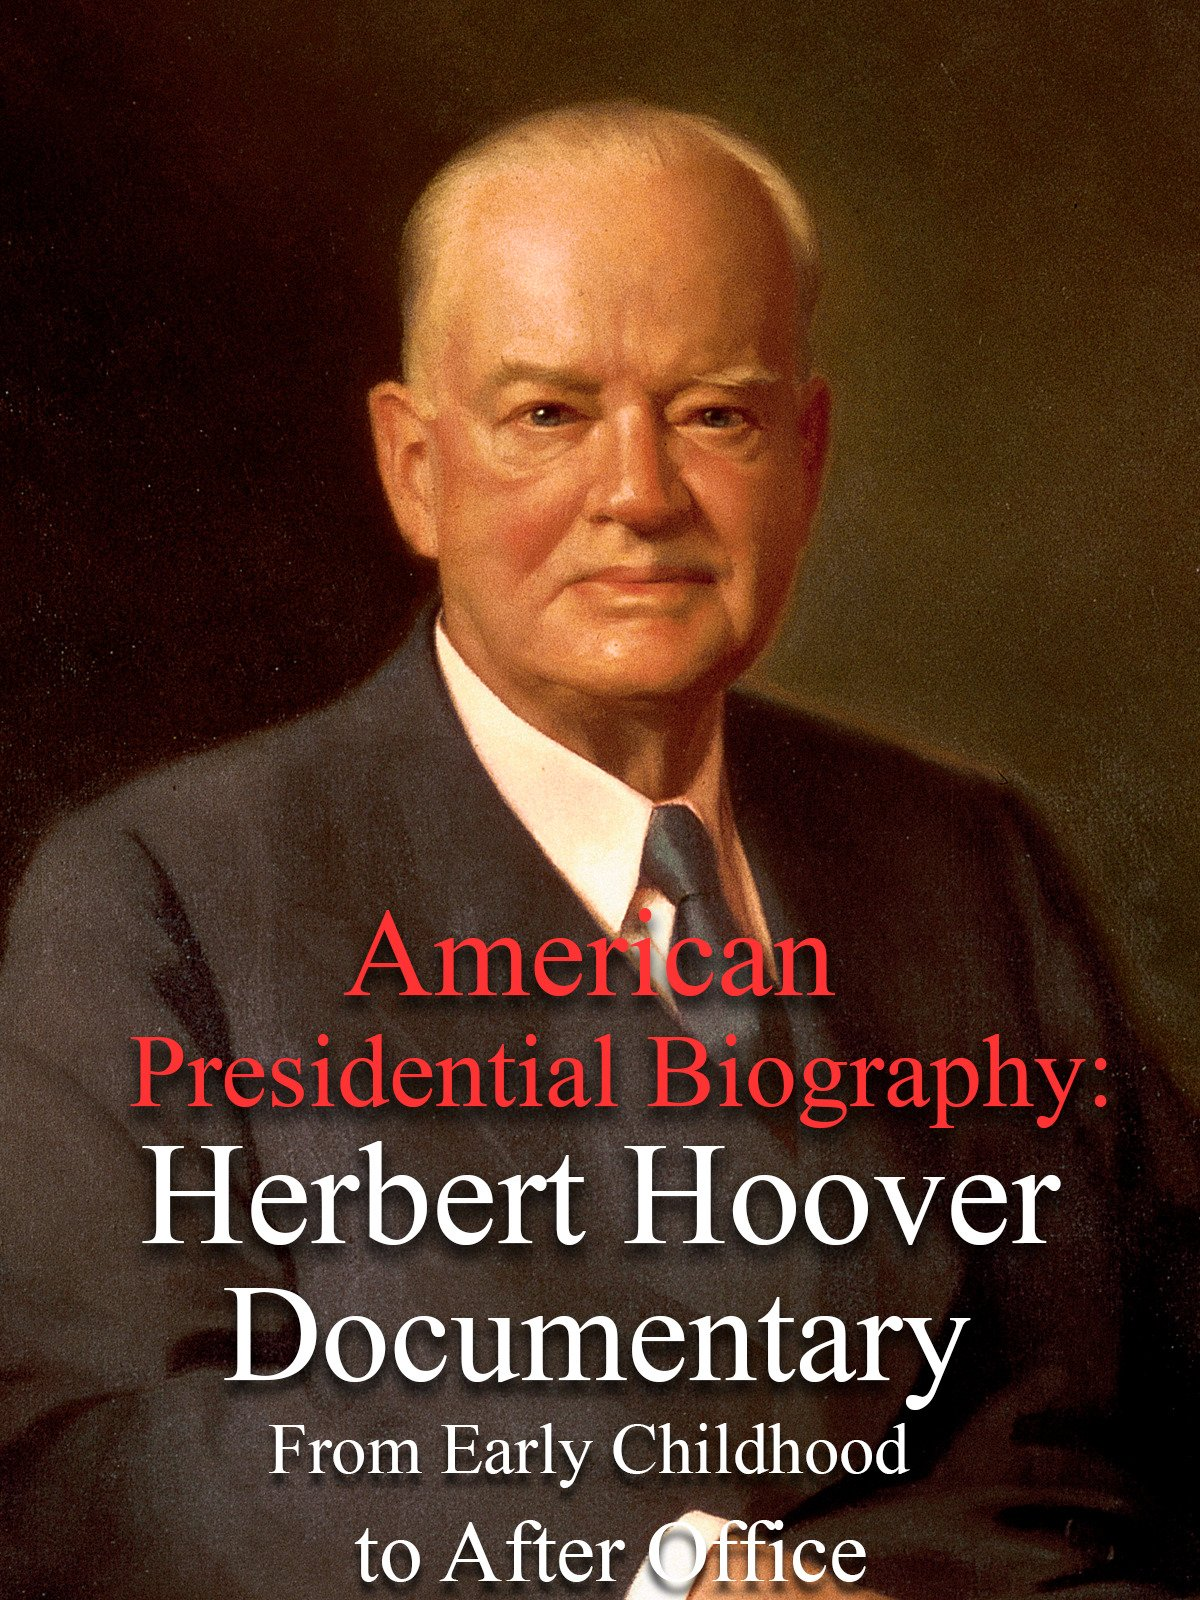 American Presidential Biography: Herbert Hoover Documentary From Early Childhood to After Office